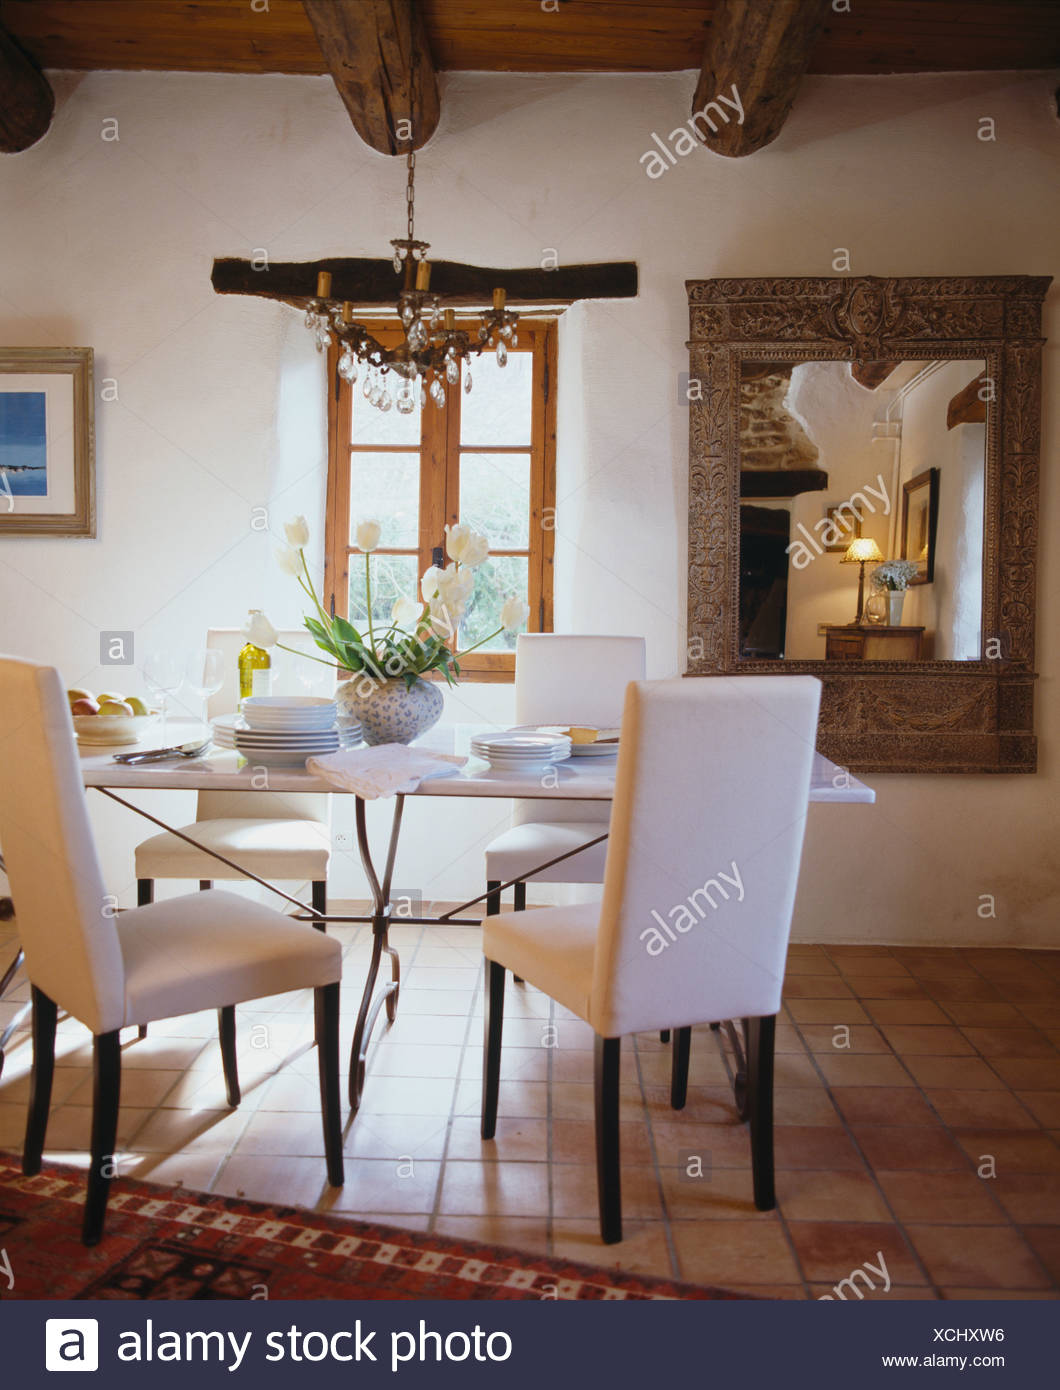 Modern White Upholstered Chairs And White Table In French Country Dining  Room With Large Mirror And Terracotta Tiled Floor